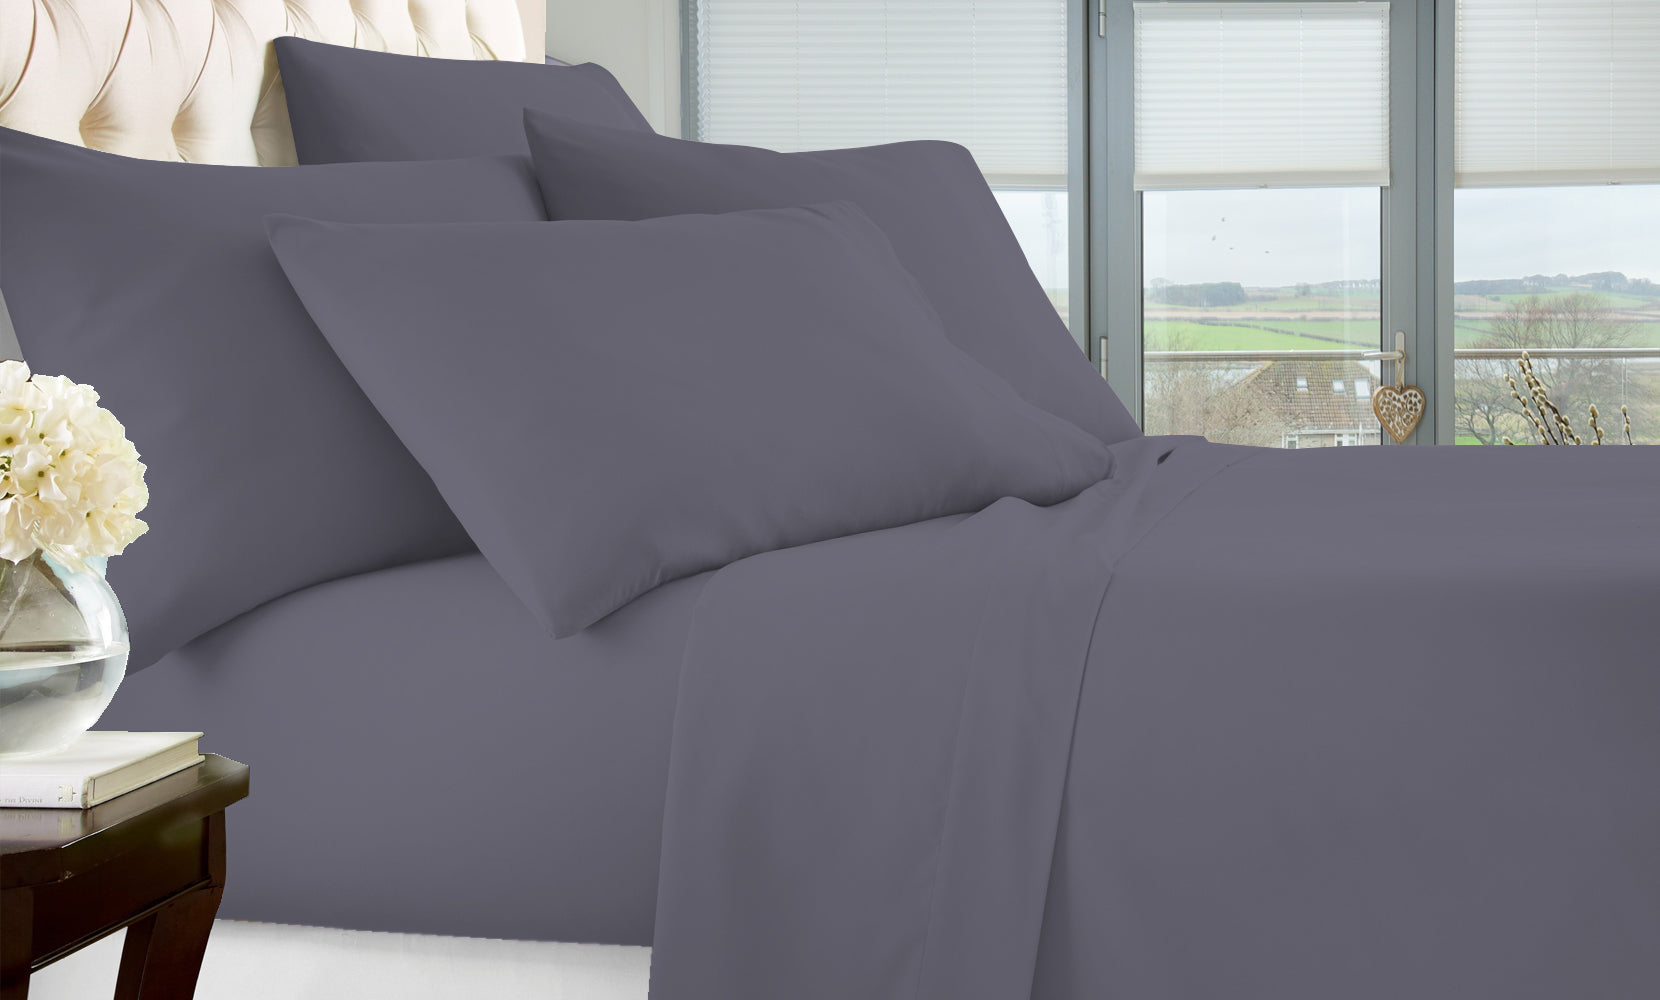 6-Piece Ultimate Fit Performance Bed Sheet Sets